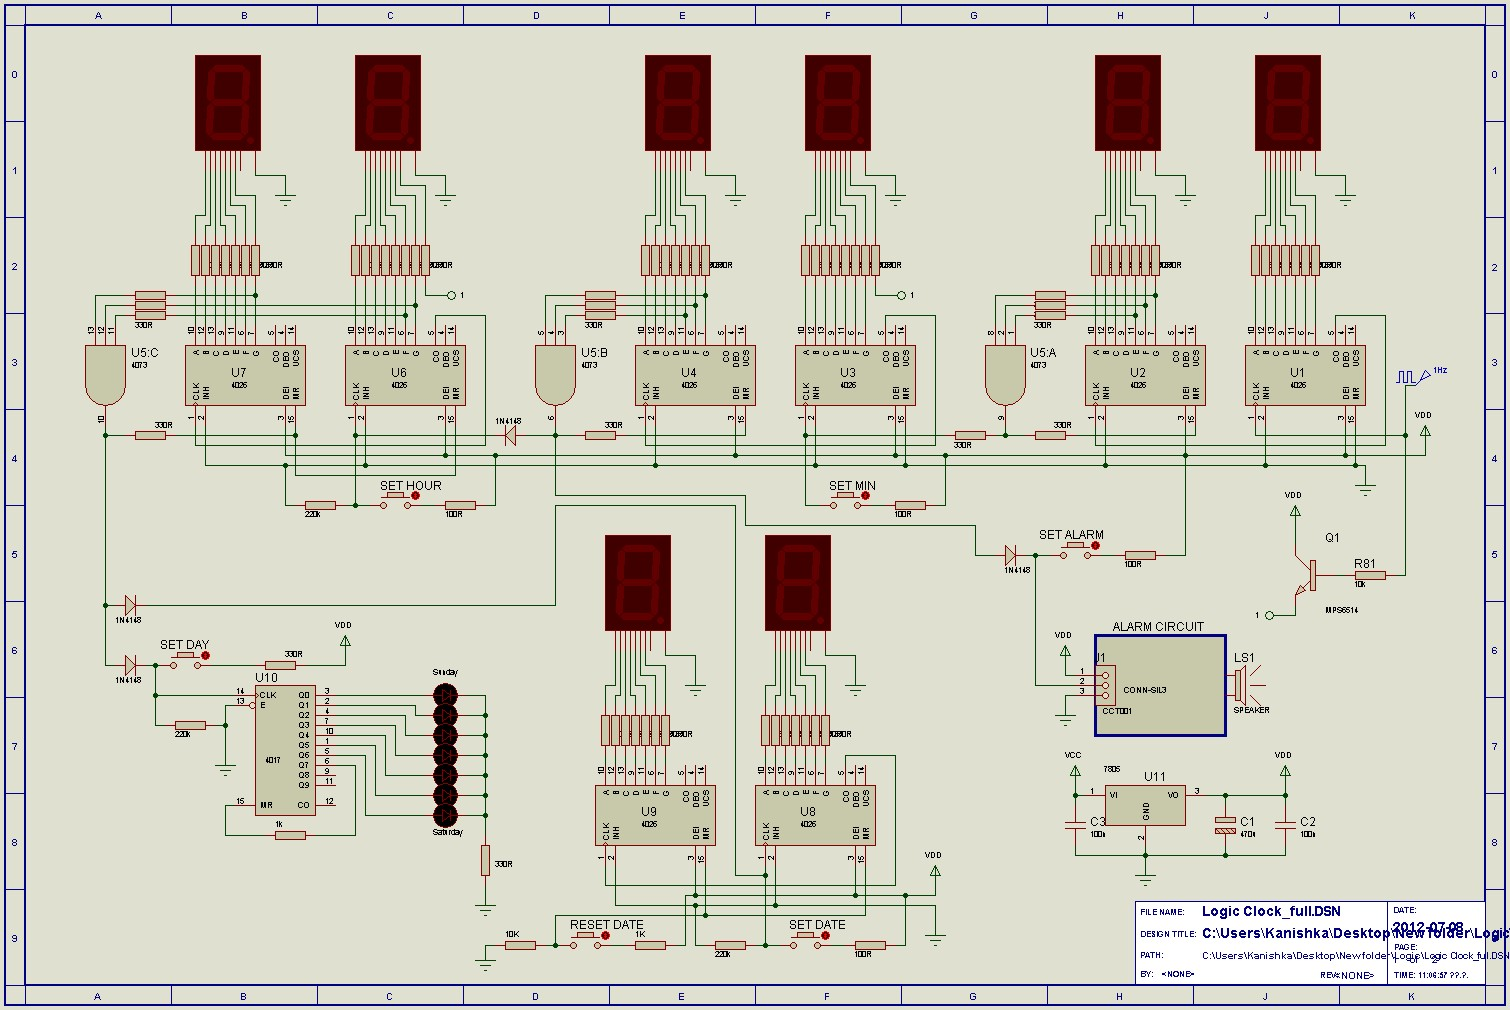 Led Clock Wiring Diagram Library Digital Using Pic Microcontroller And Ds1307 Rtc Logic Circuit Full